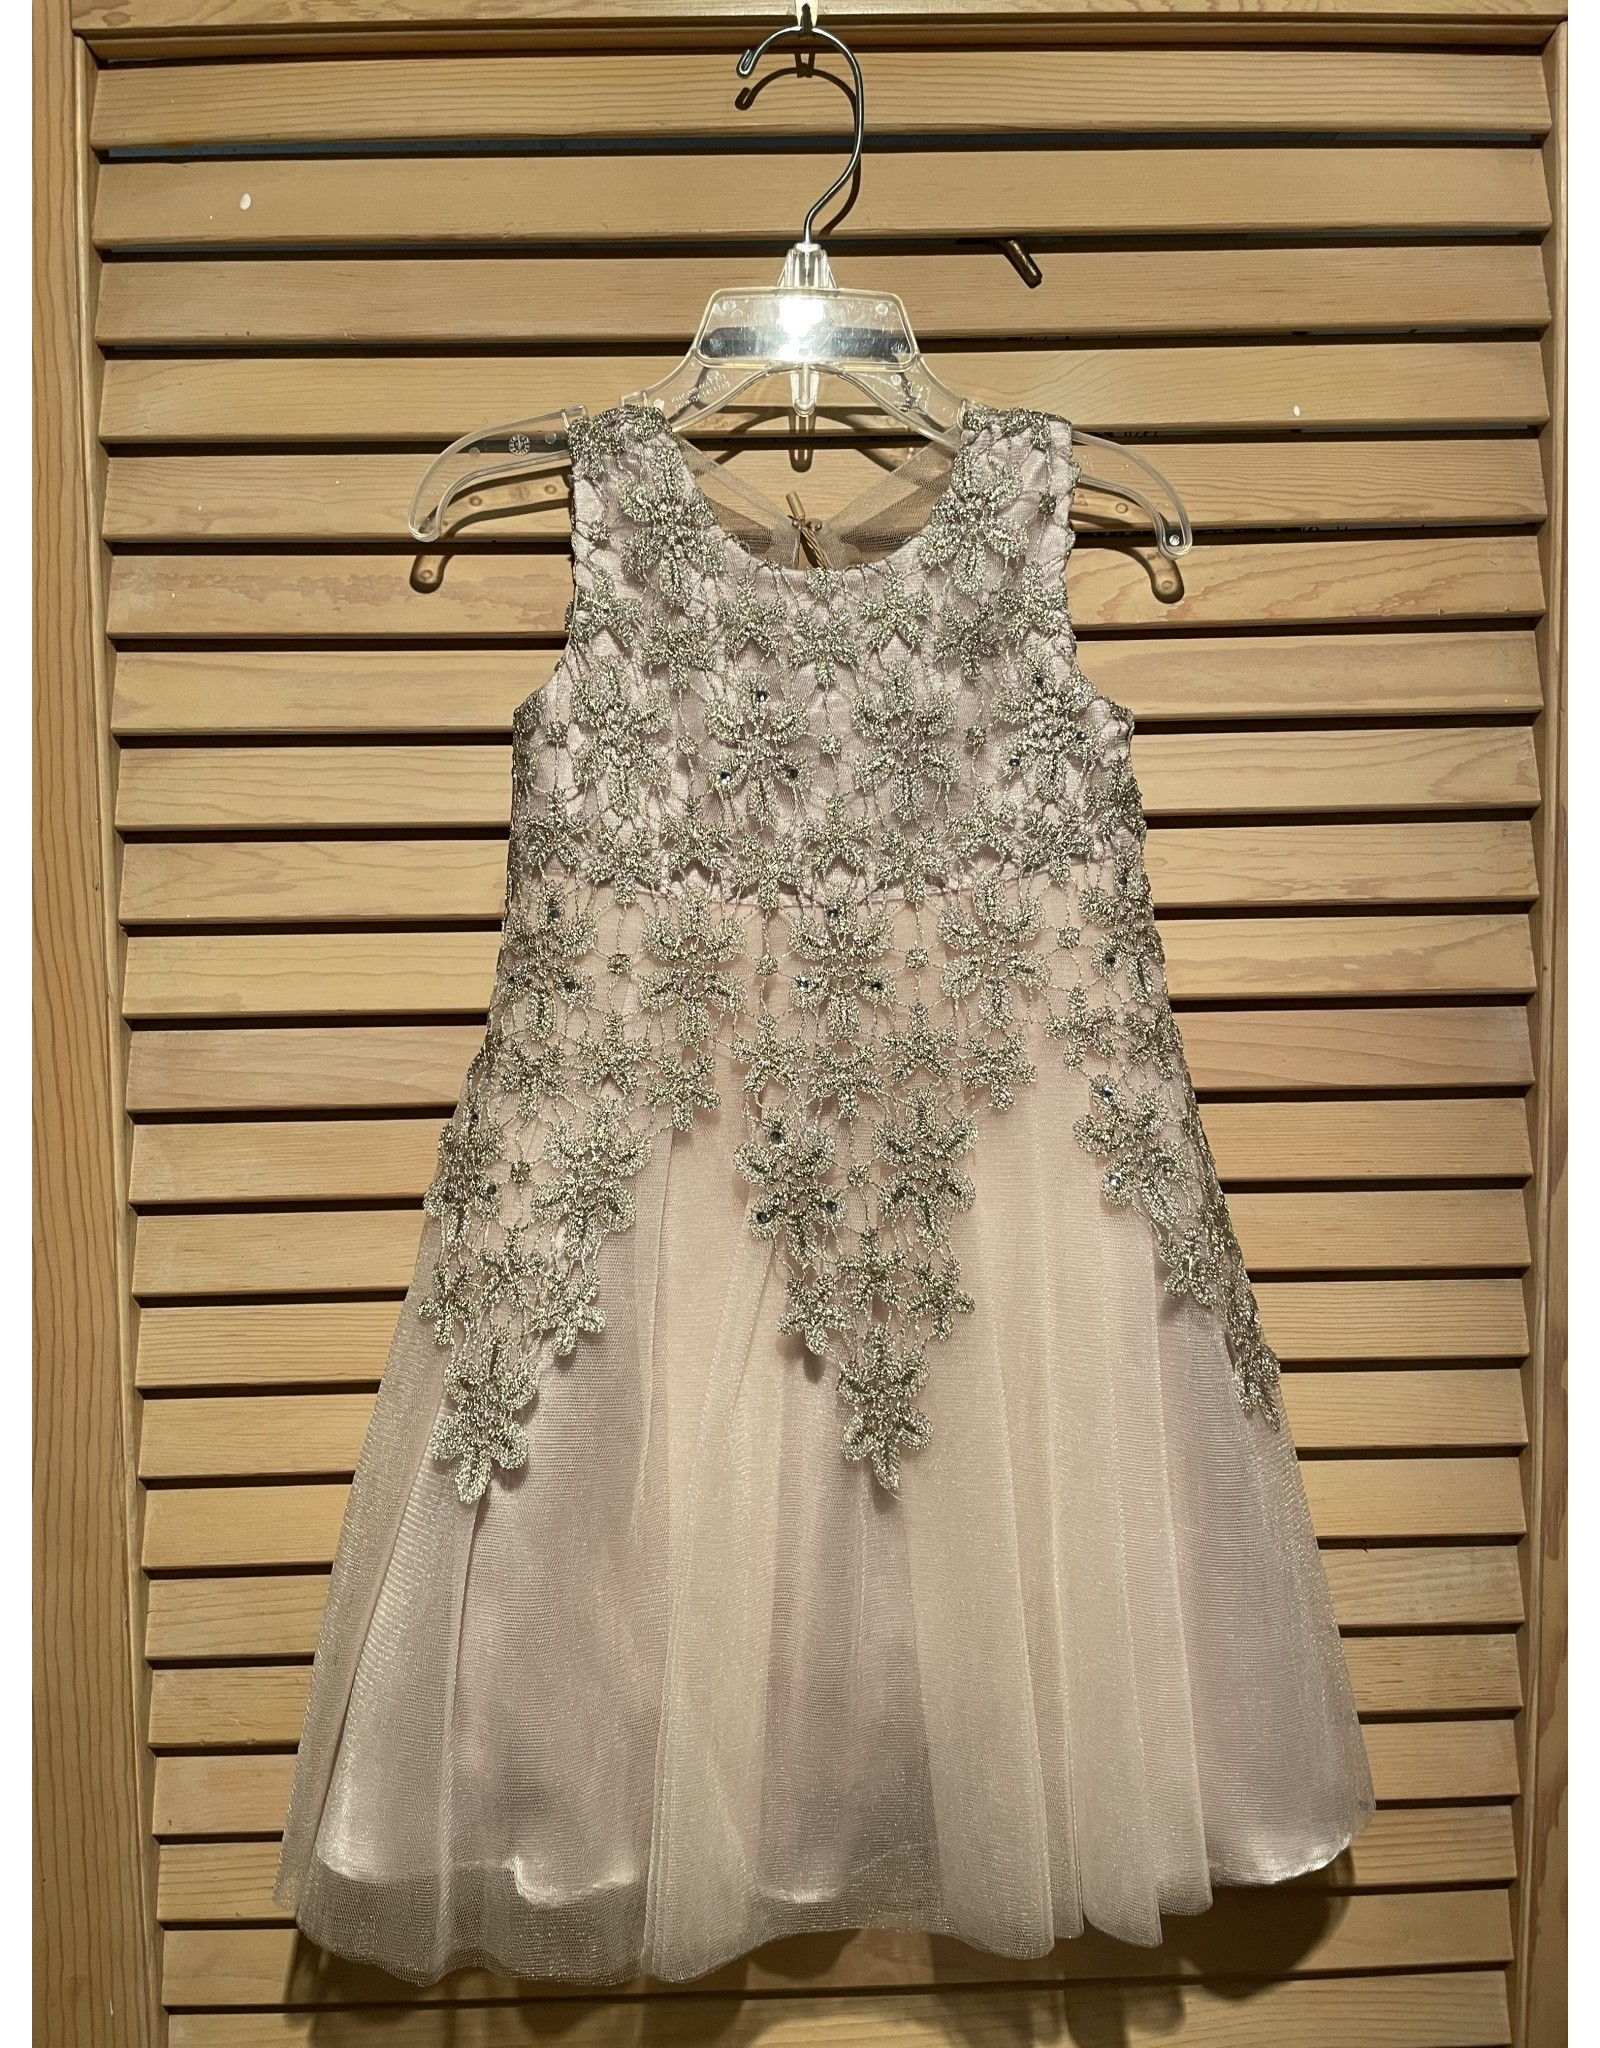 ML Couture Tule Dress with Champagne Lace Overlay